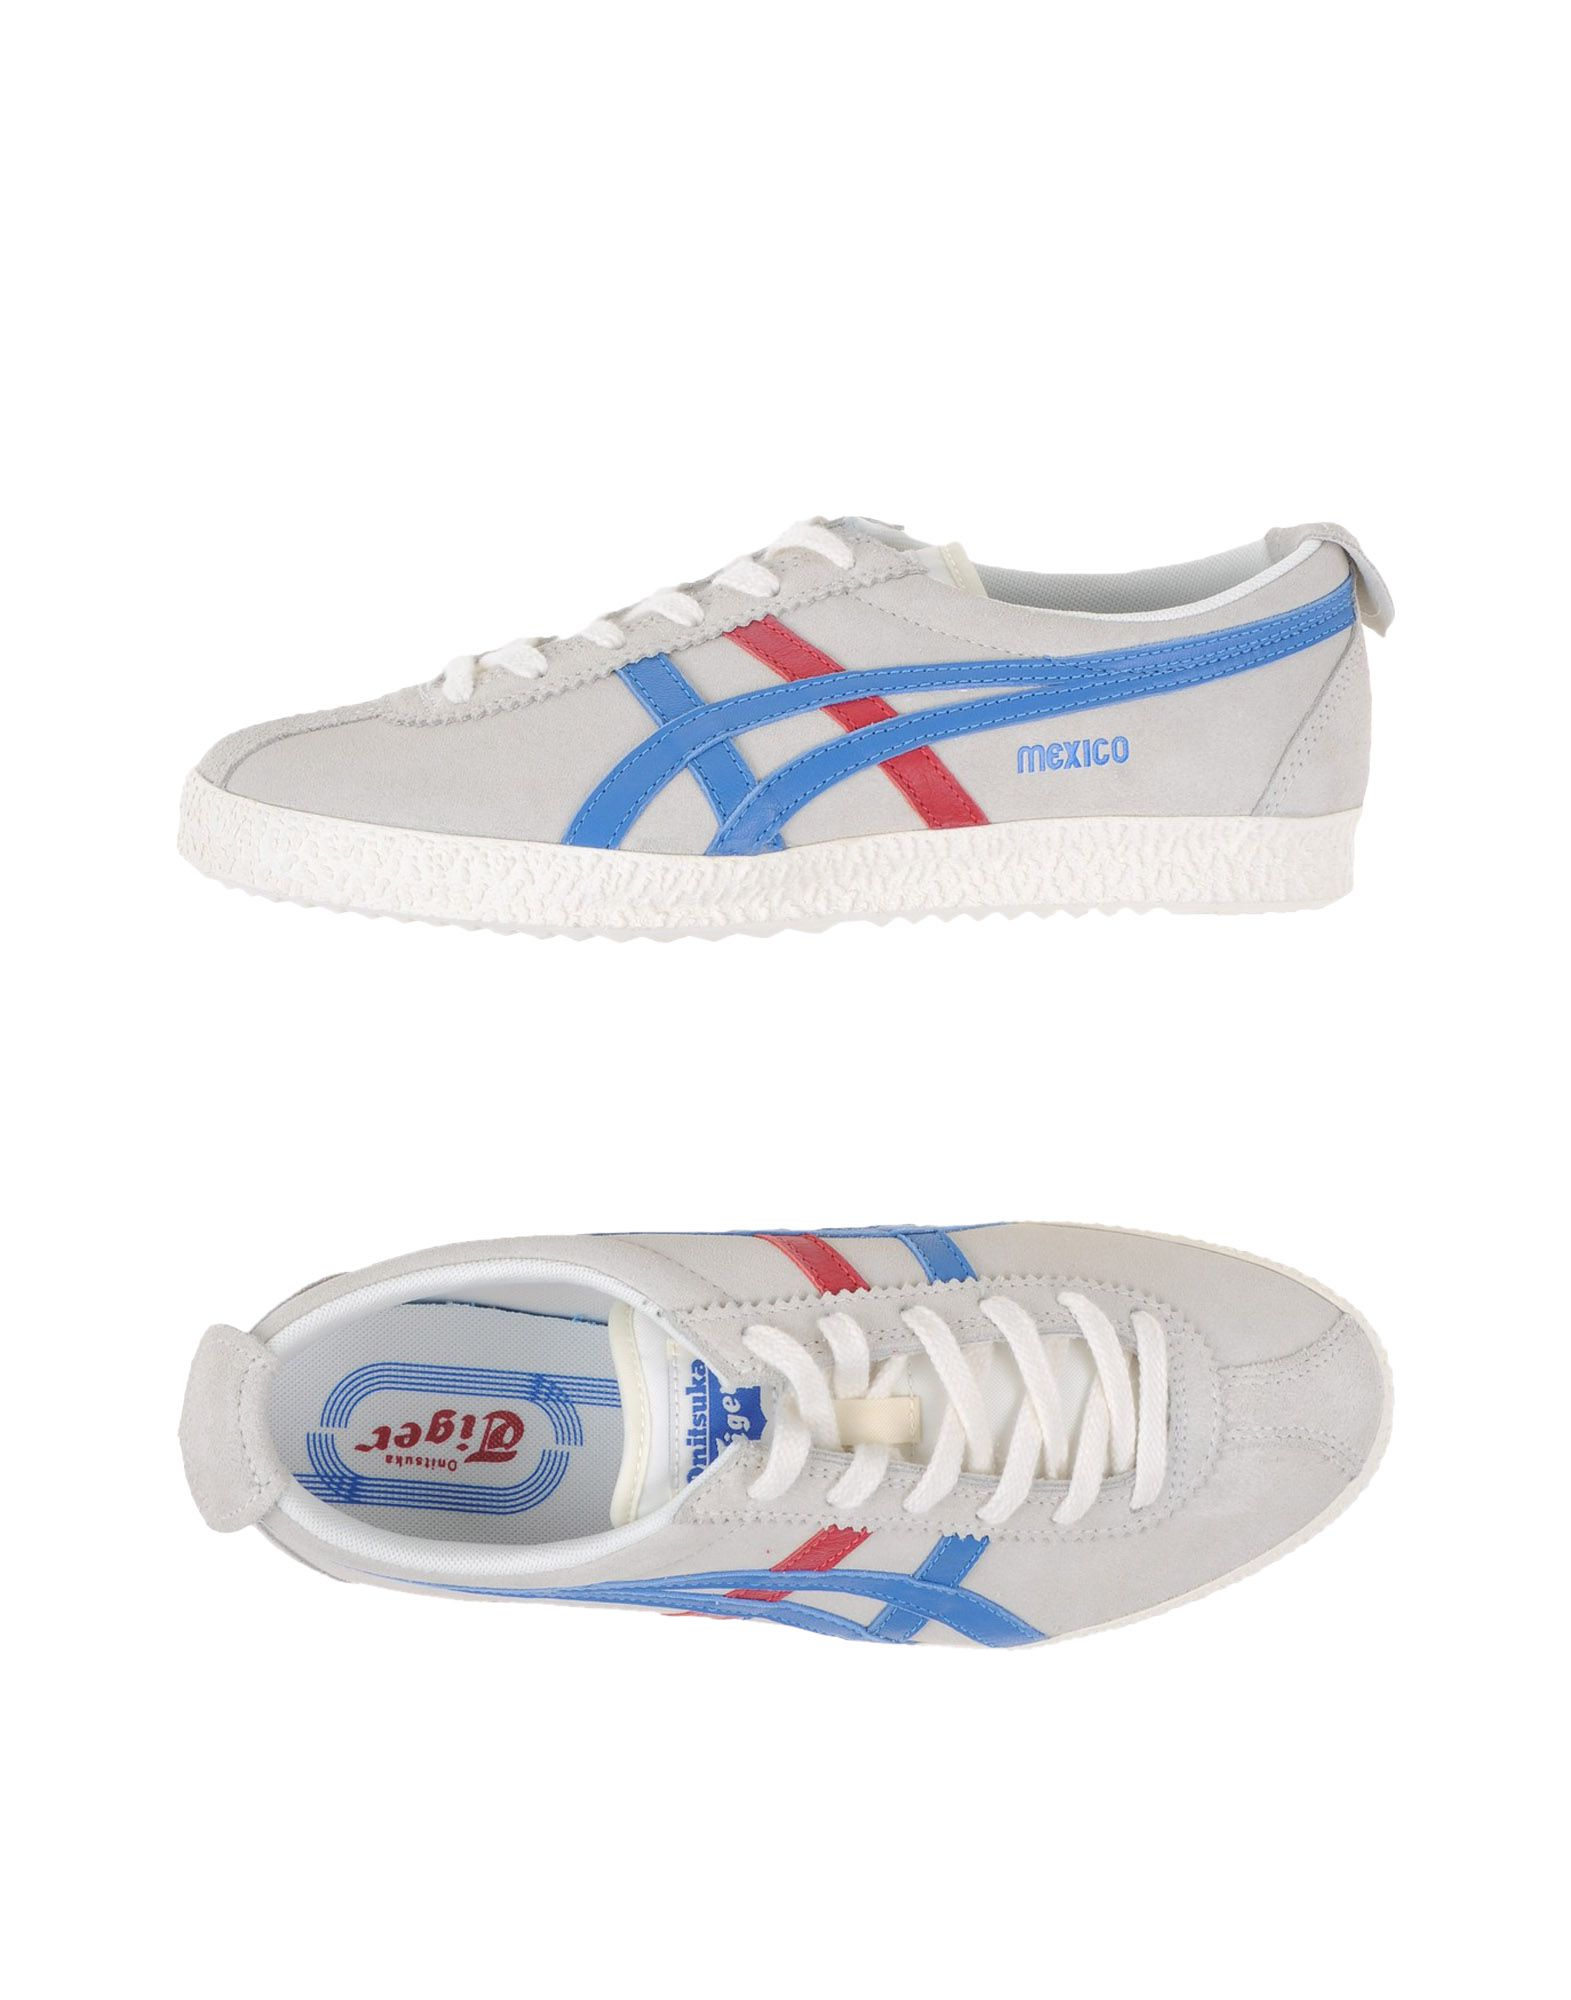 Sneakers Onitsuka Tiger Mexico Delegation - Donna - Acquista online su